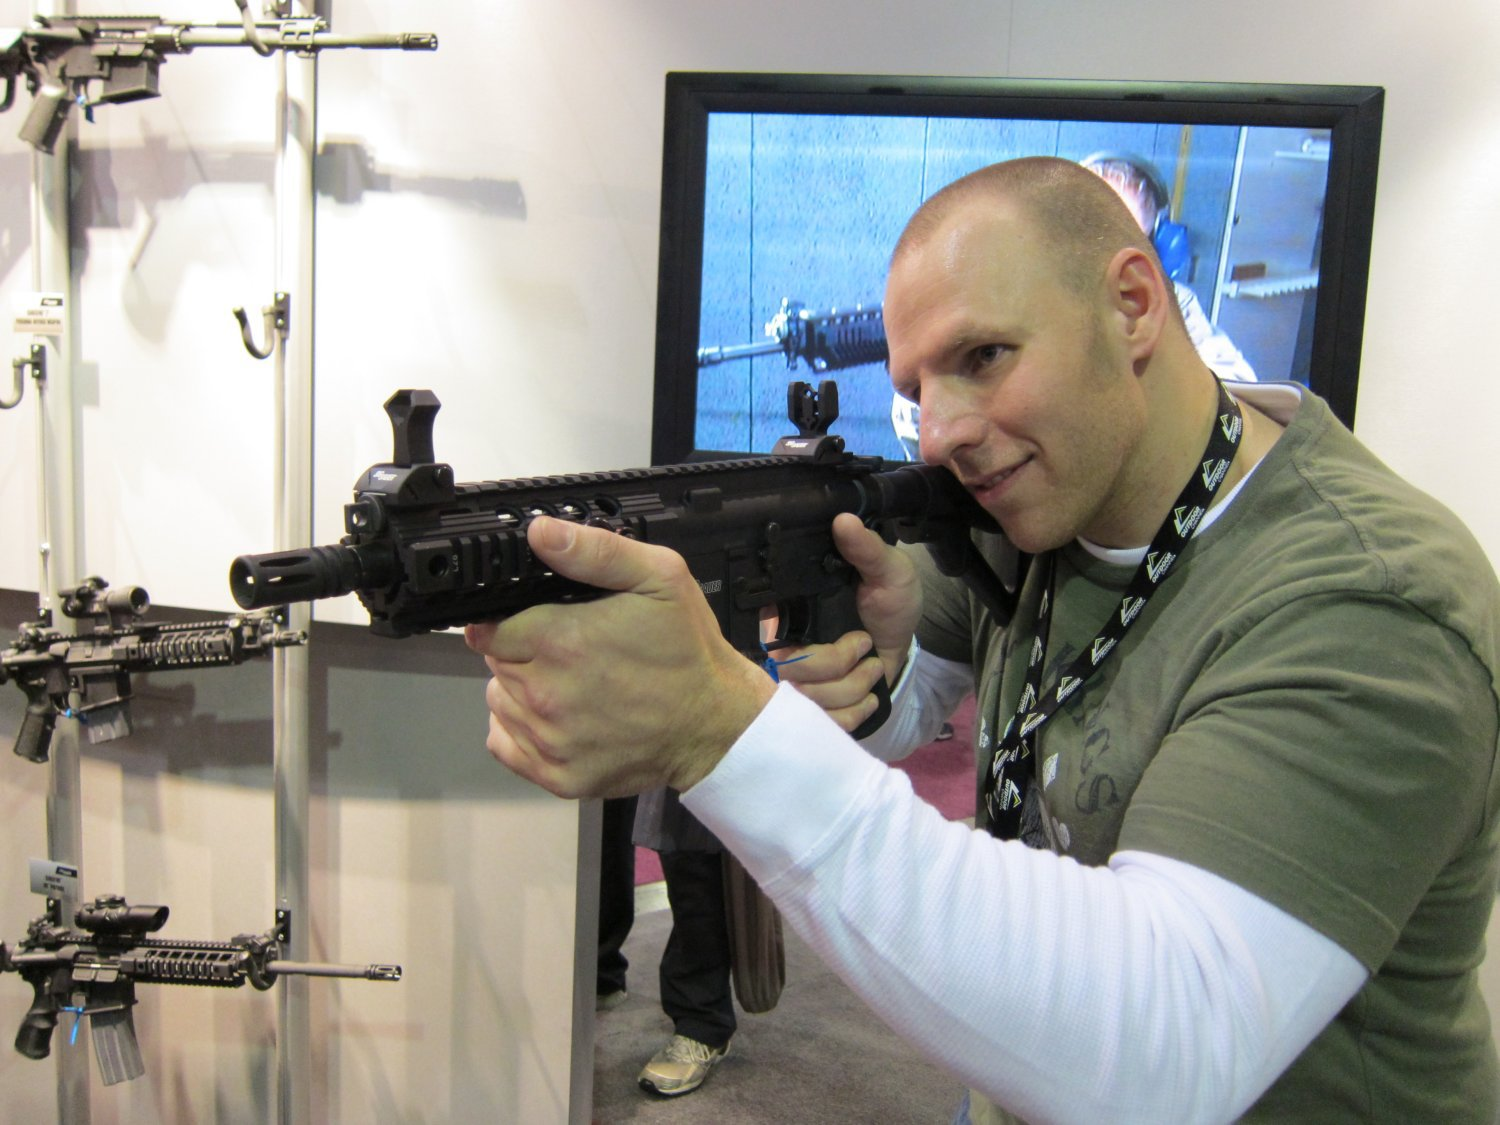 SHOT Show 2010 SIG SAUER SIG516 Gas Piston Op Rod Carbine SBR Series 4 <!  :en  >SIG Sauer SIG516 (5.56mm) and SIG716 (7.62mm) Short Stroke Gas Piston/Op Rod System Tactical AR Rifle/Carbine/SBR Series at SHOT Show 2010 (Photos!) <!  :  >